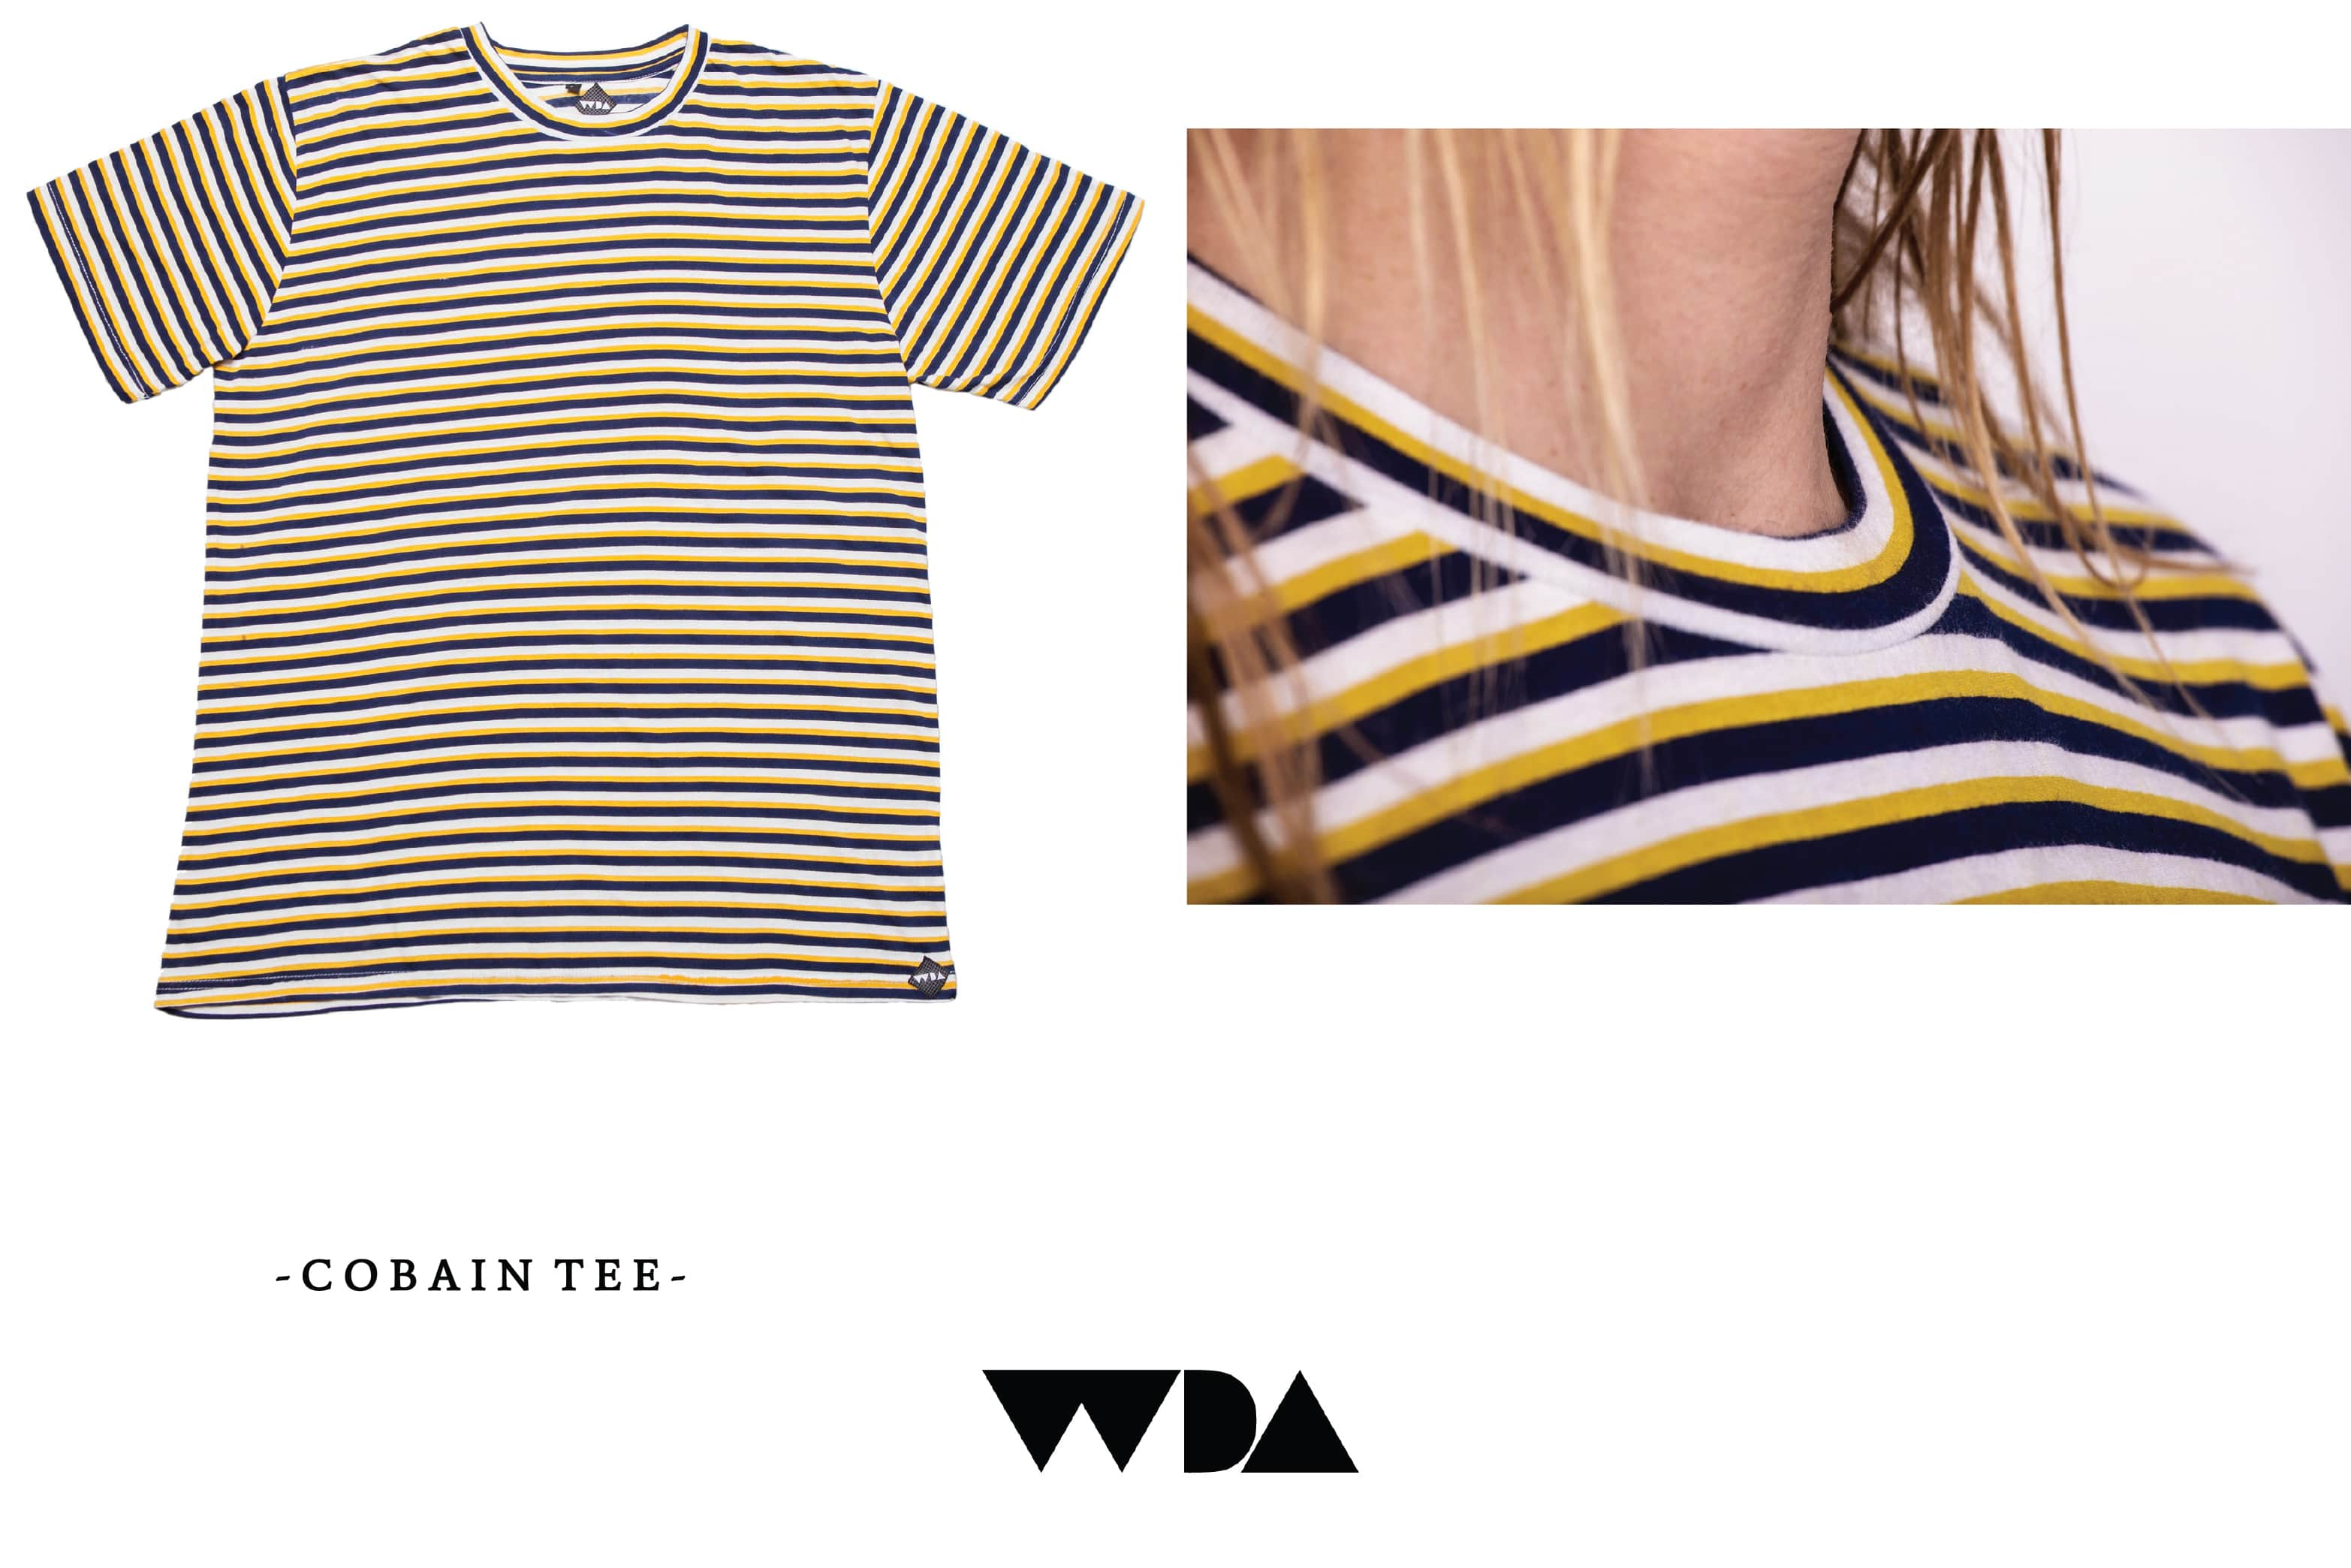 WDA, WE DREAM ALONE, CLOTHING, APPAREL, MENS, TEE, COBAIN, MULTI STRIPE, CLOSEUP